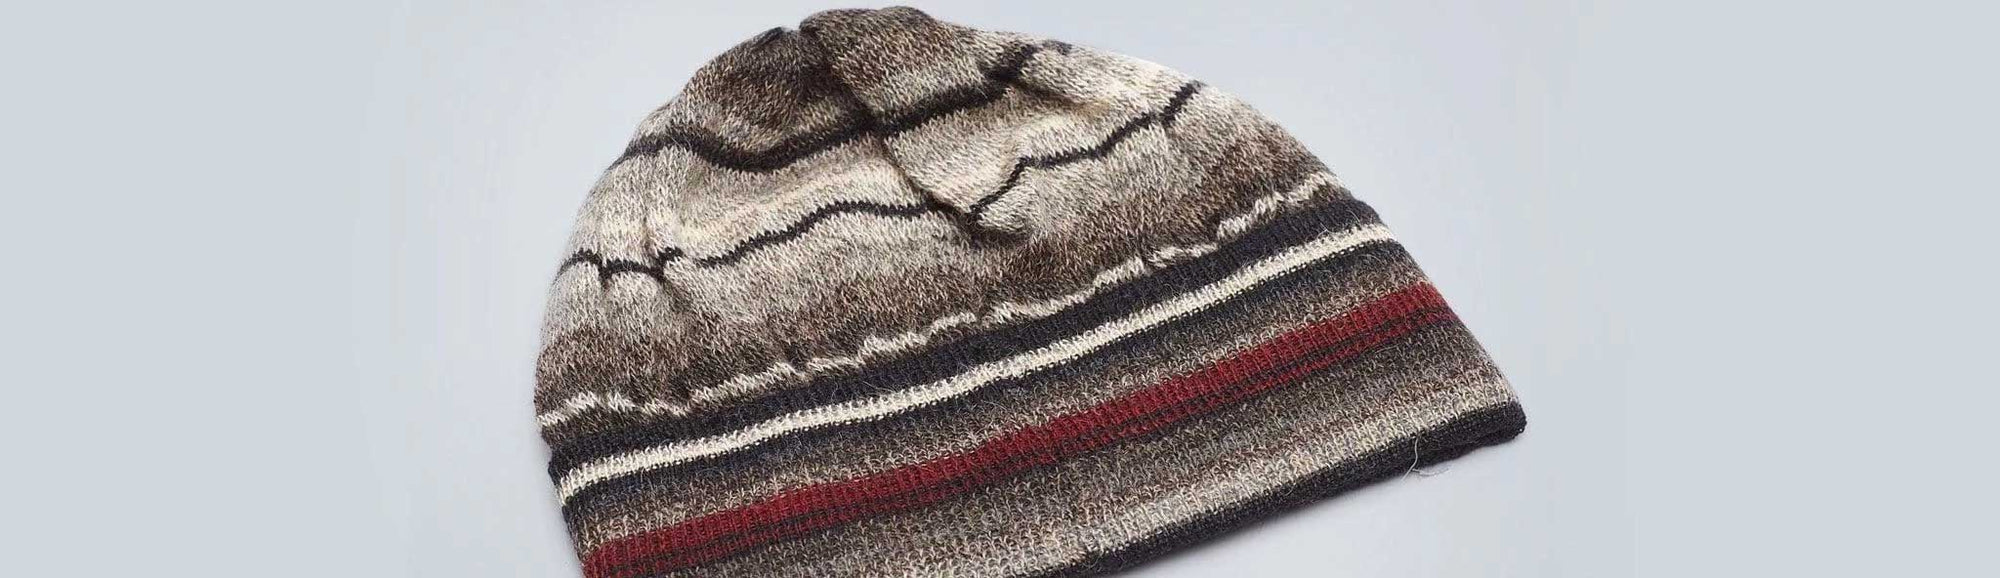 Men's Beanie Hats and Accessories